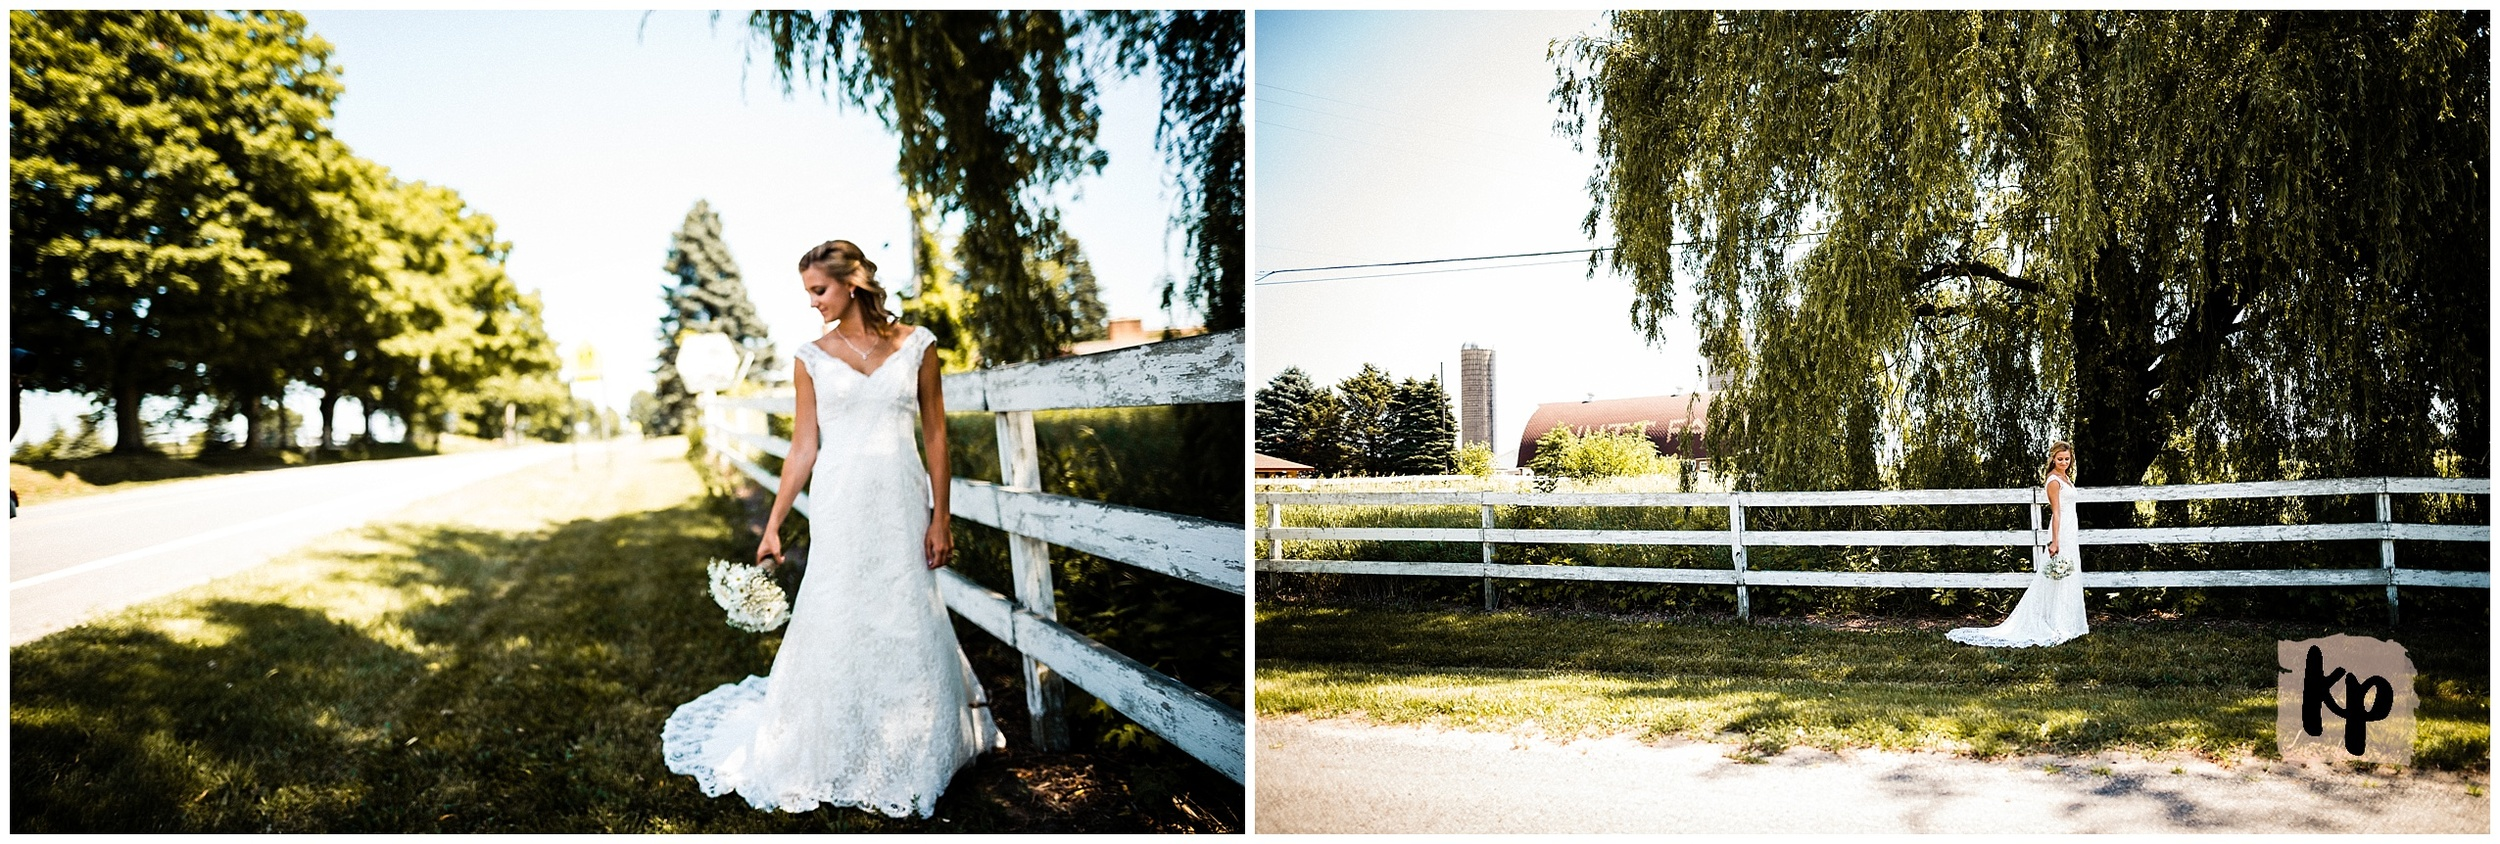 Andrew + Jessica | Just Married #kyleepaigephotography_0154.jpg